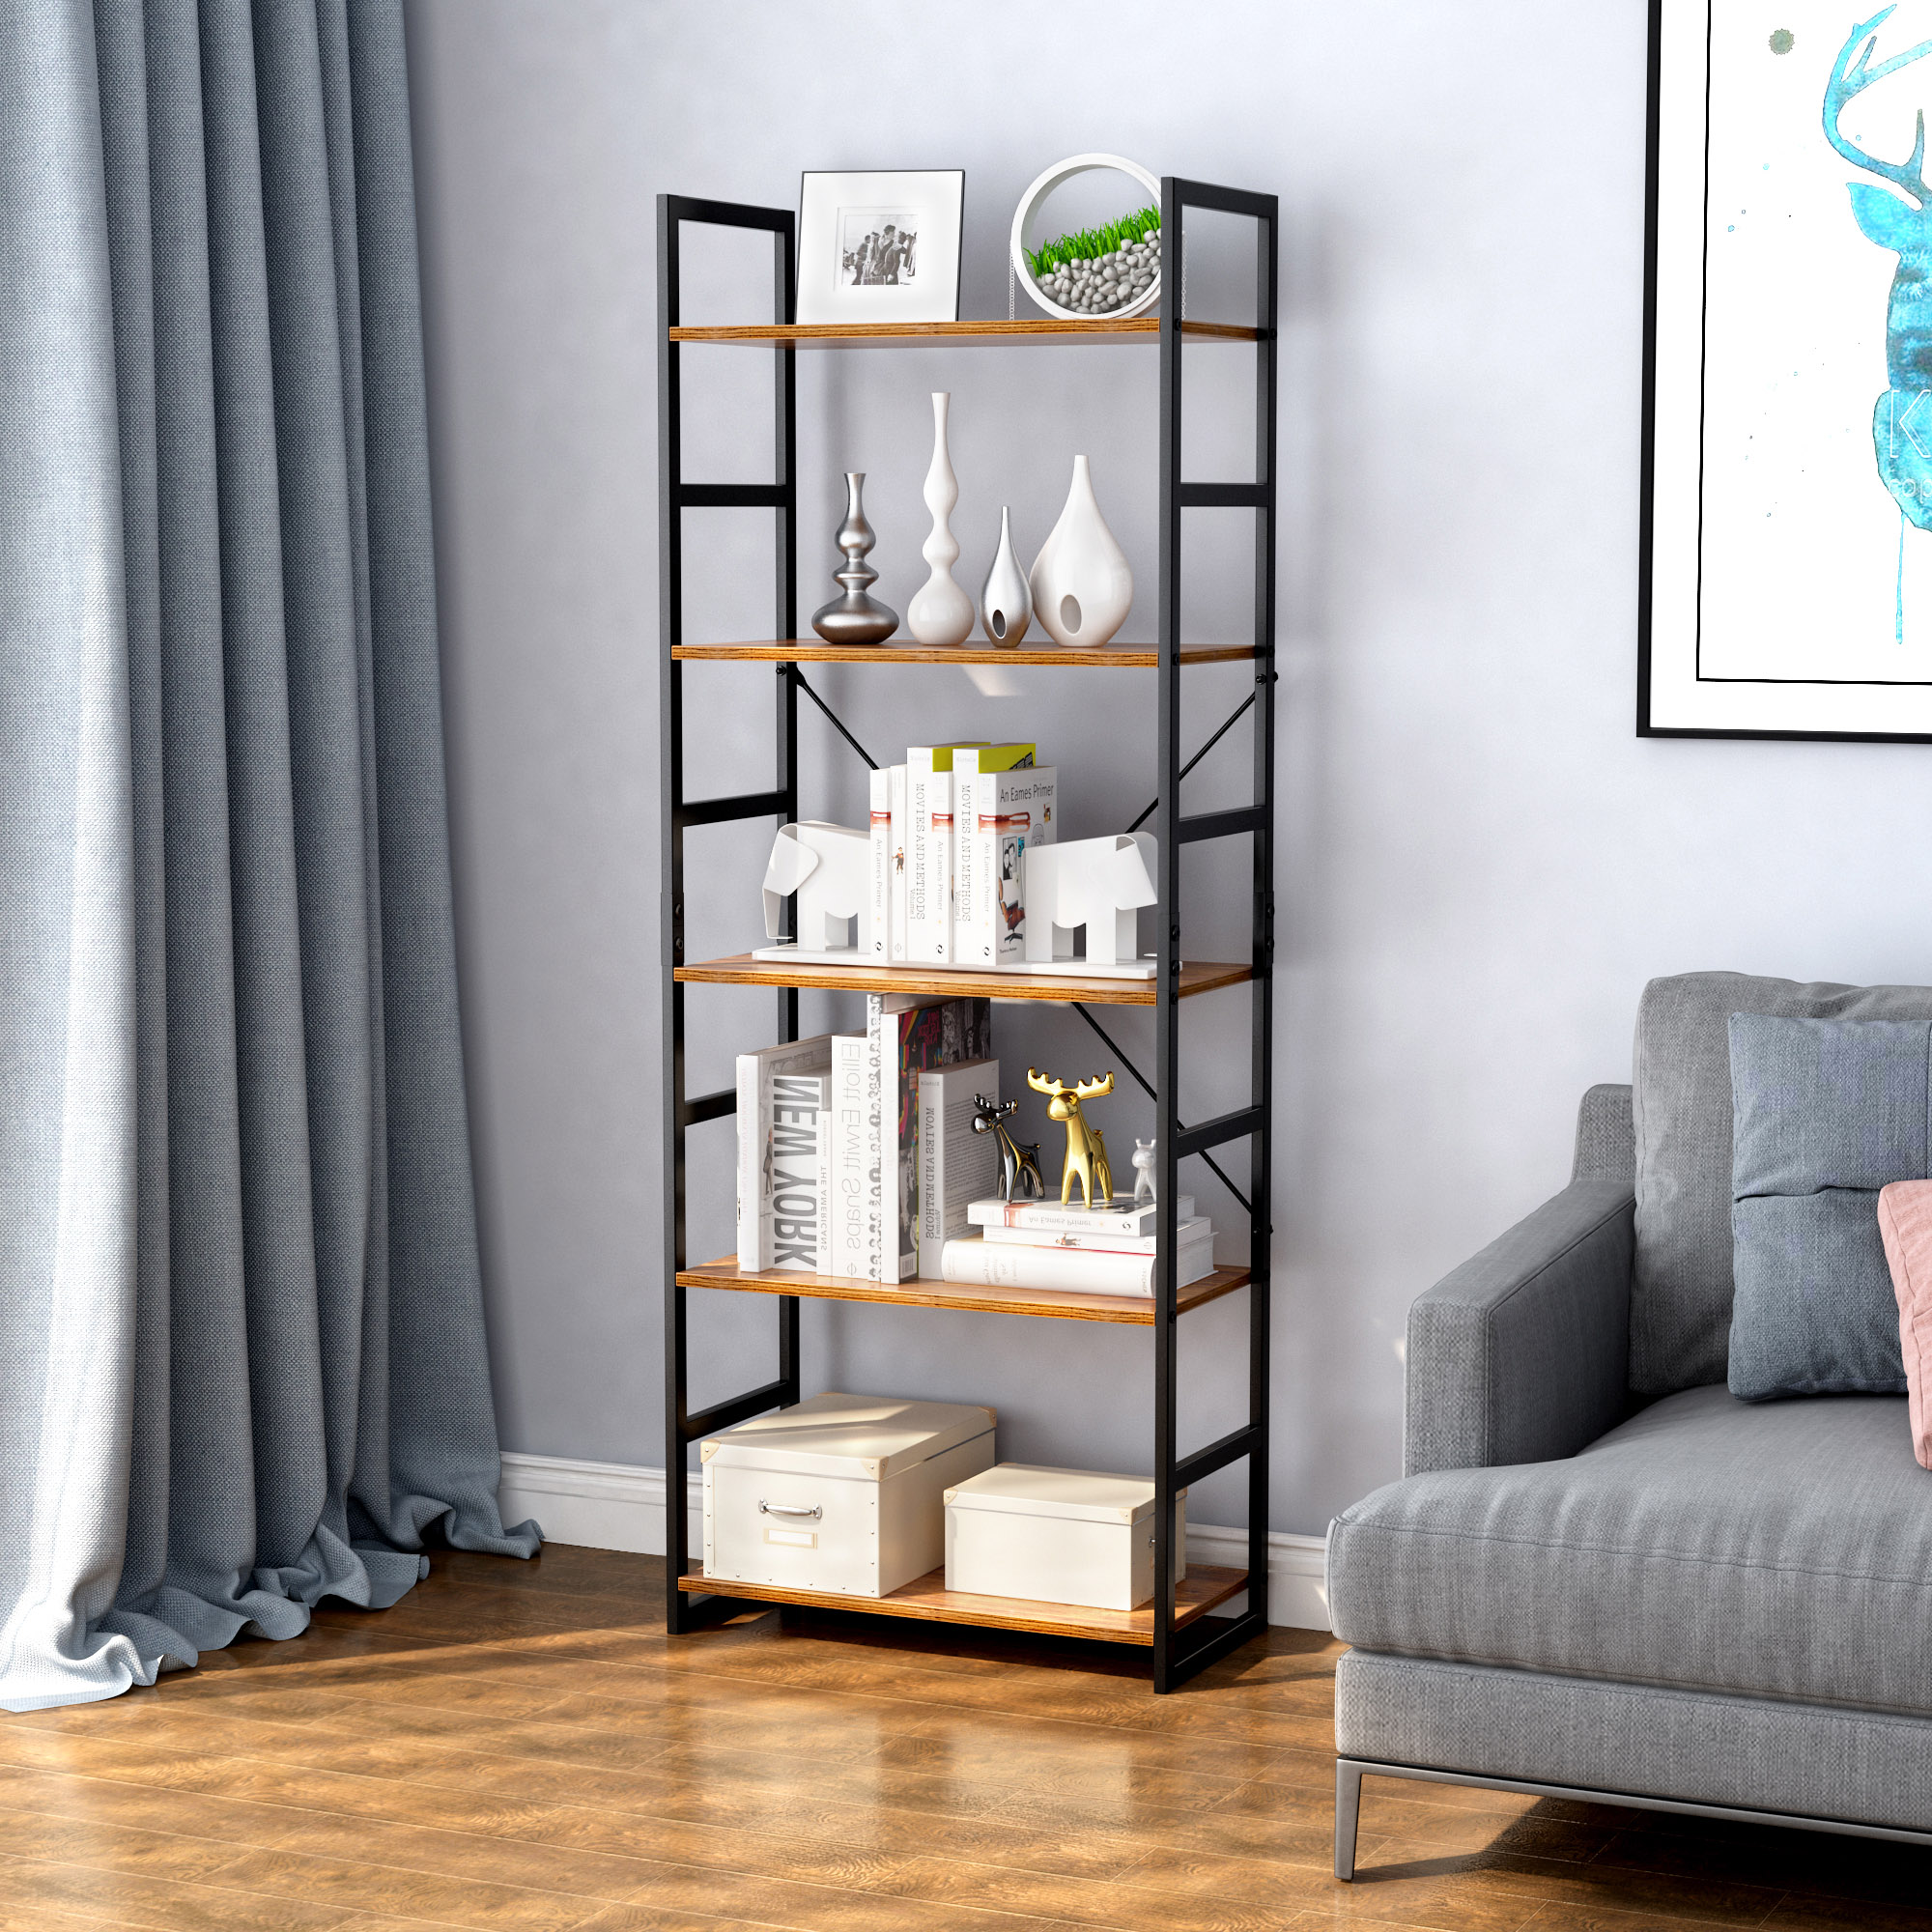 Details About 5 Tier Bookcase Book Shelf Storage Organizer Rack Cabinet Home Office Display Us